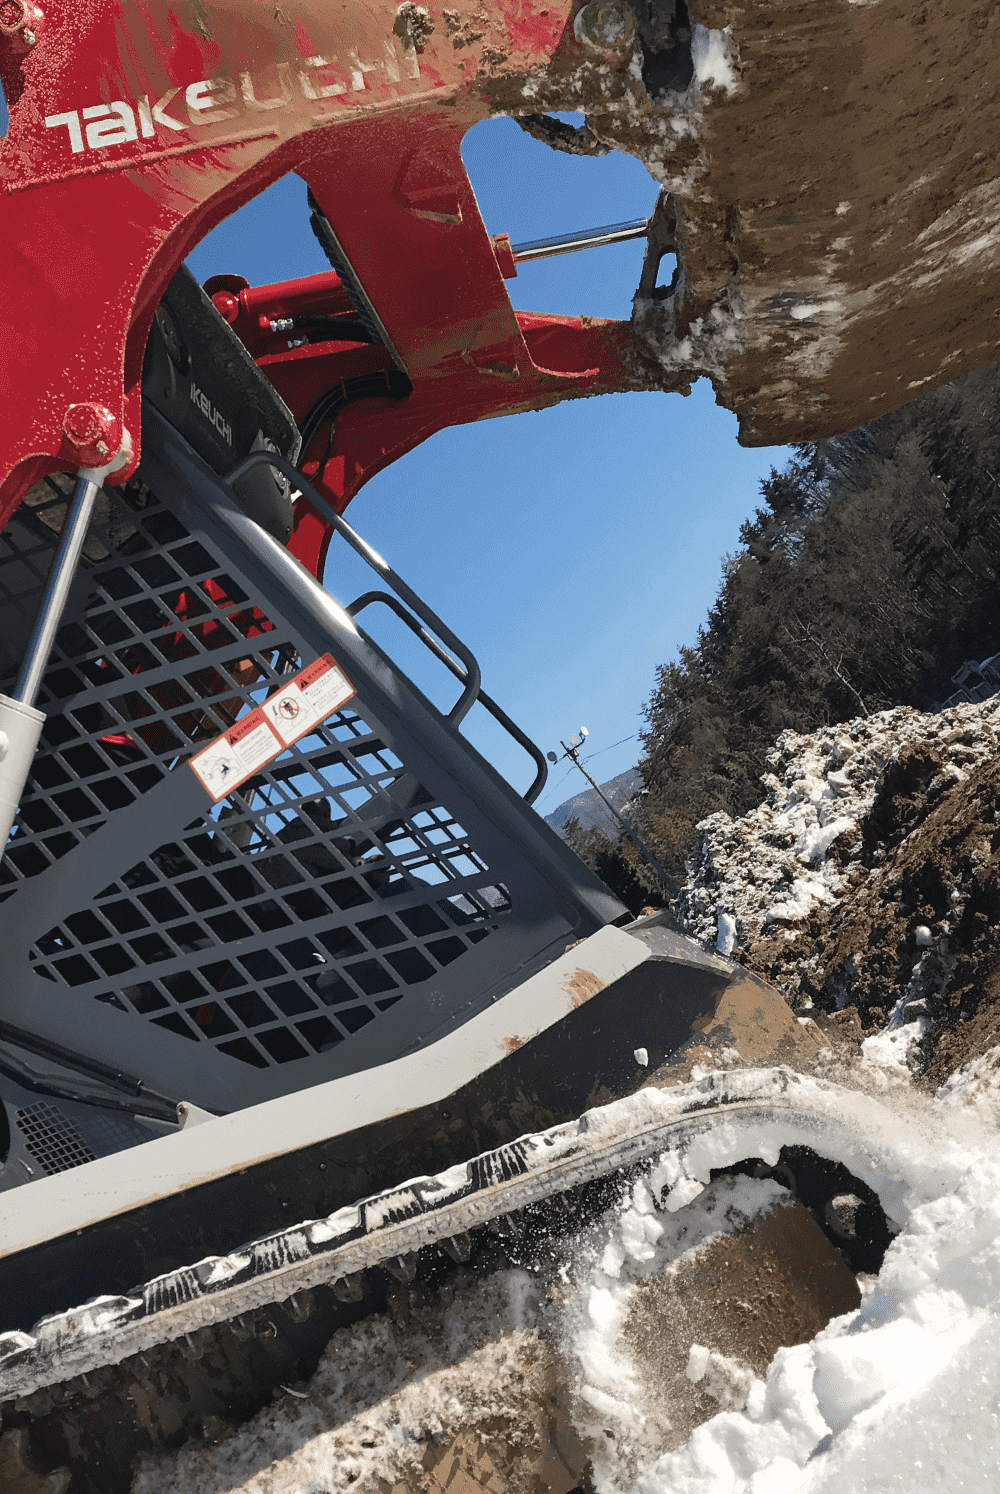 Takeuchi excavator rips through the frozen Earth after Takeuchi parts replacement